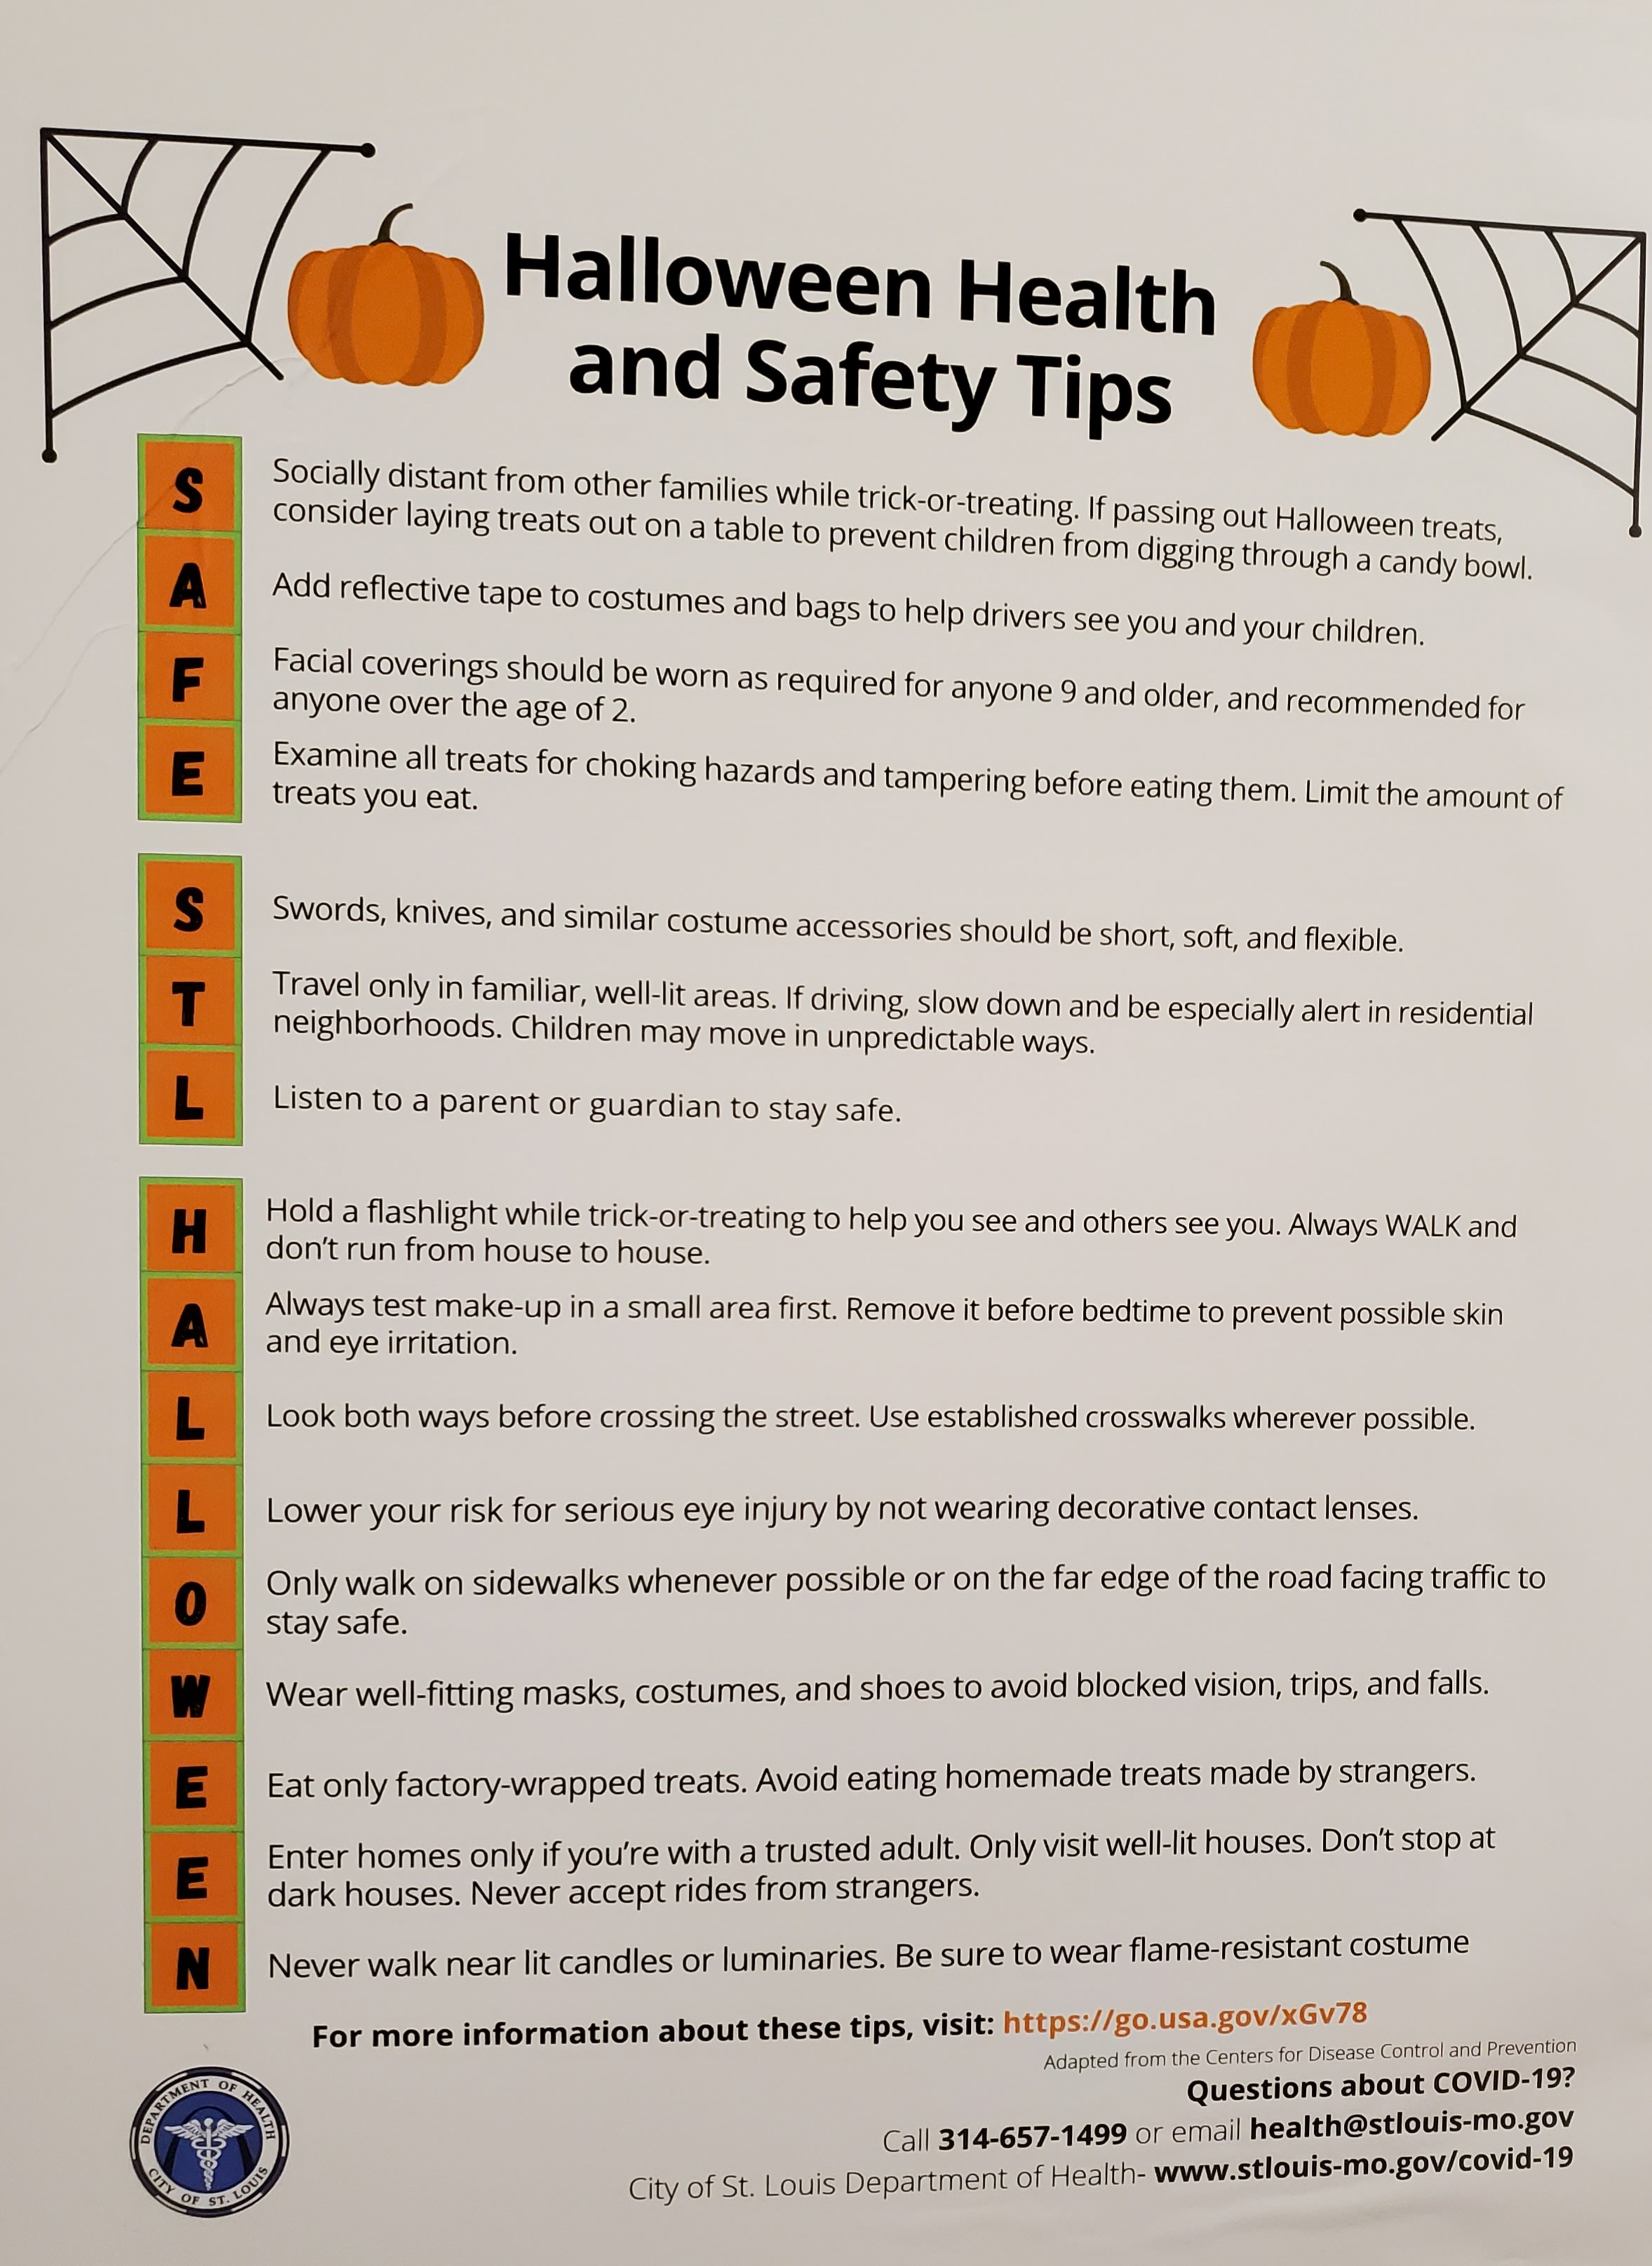 St Louis Halloween 2020 2020 Halloween Health and Safety Tips